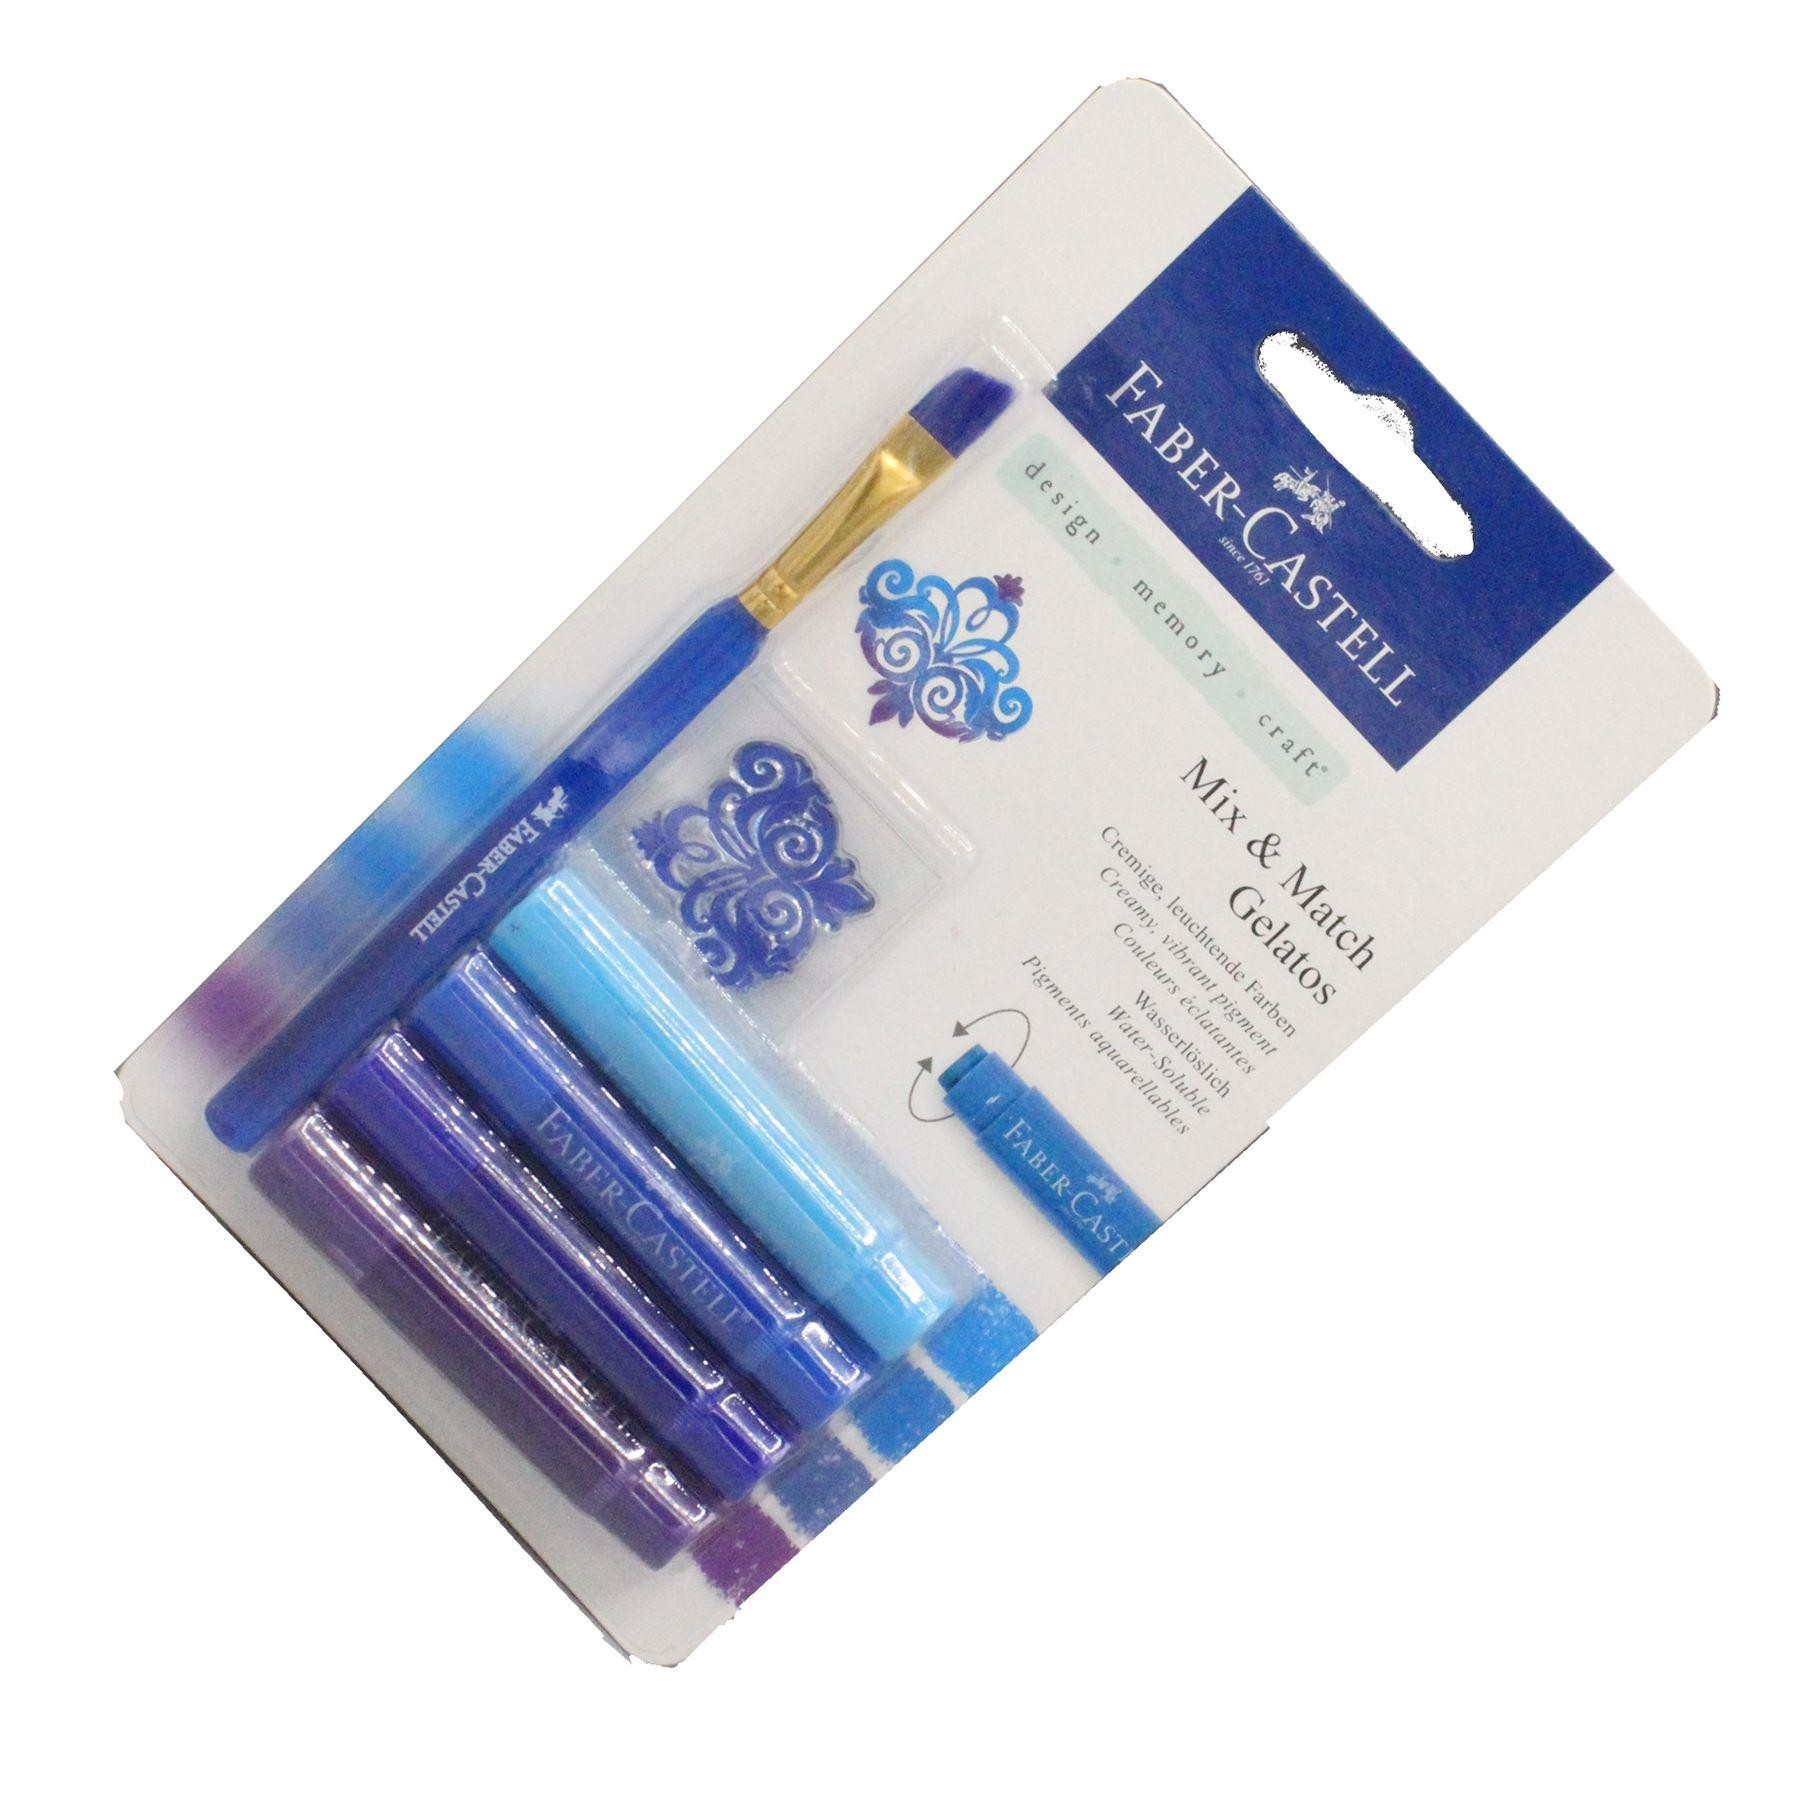 Faber Castell Mix & Match Galatos water-soluble crayons, pigment sticks